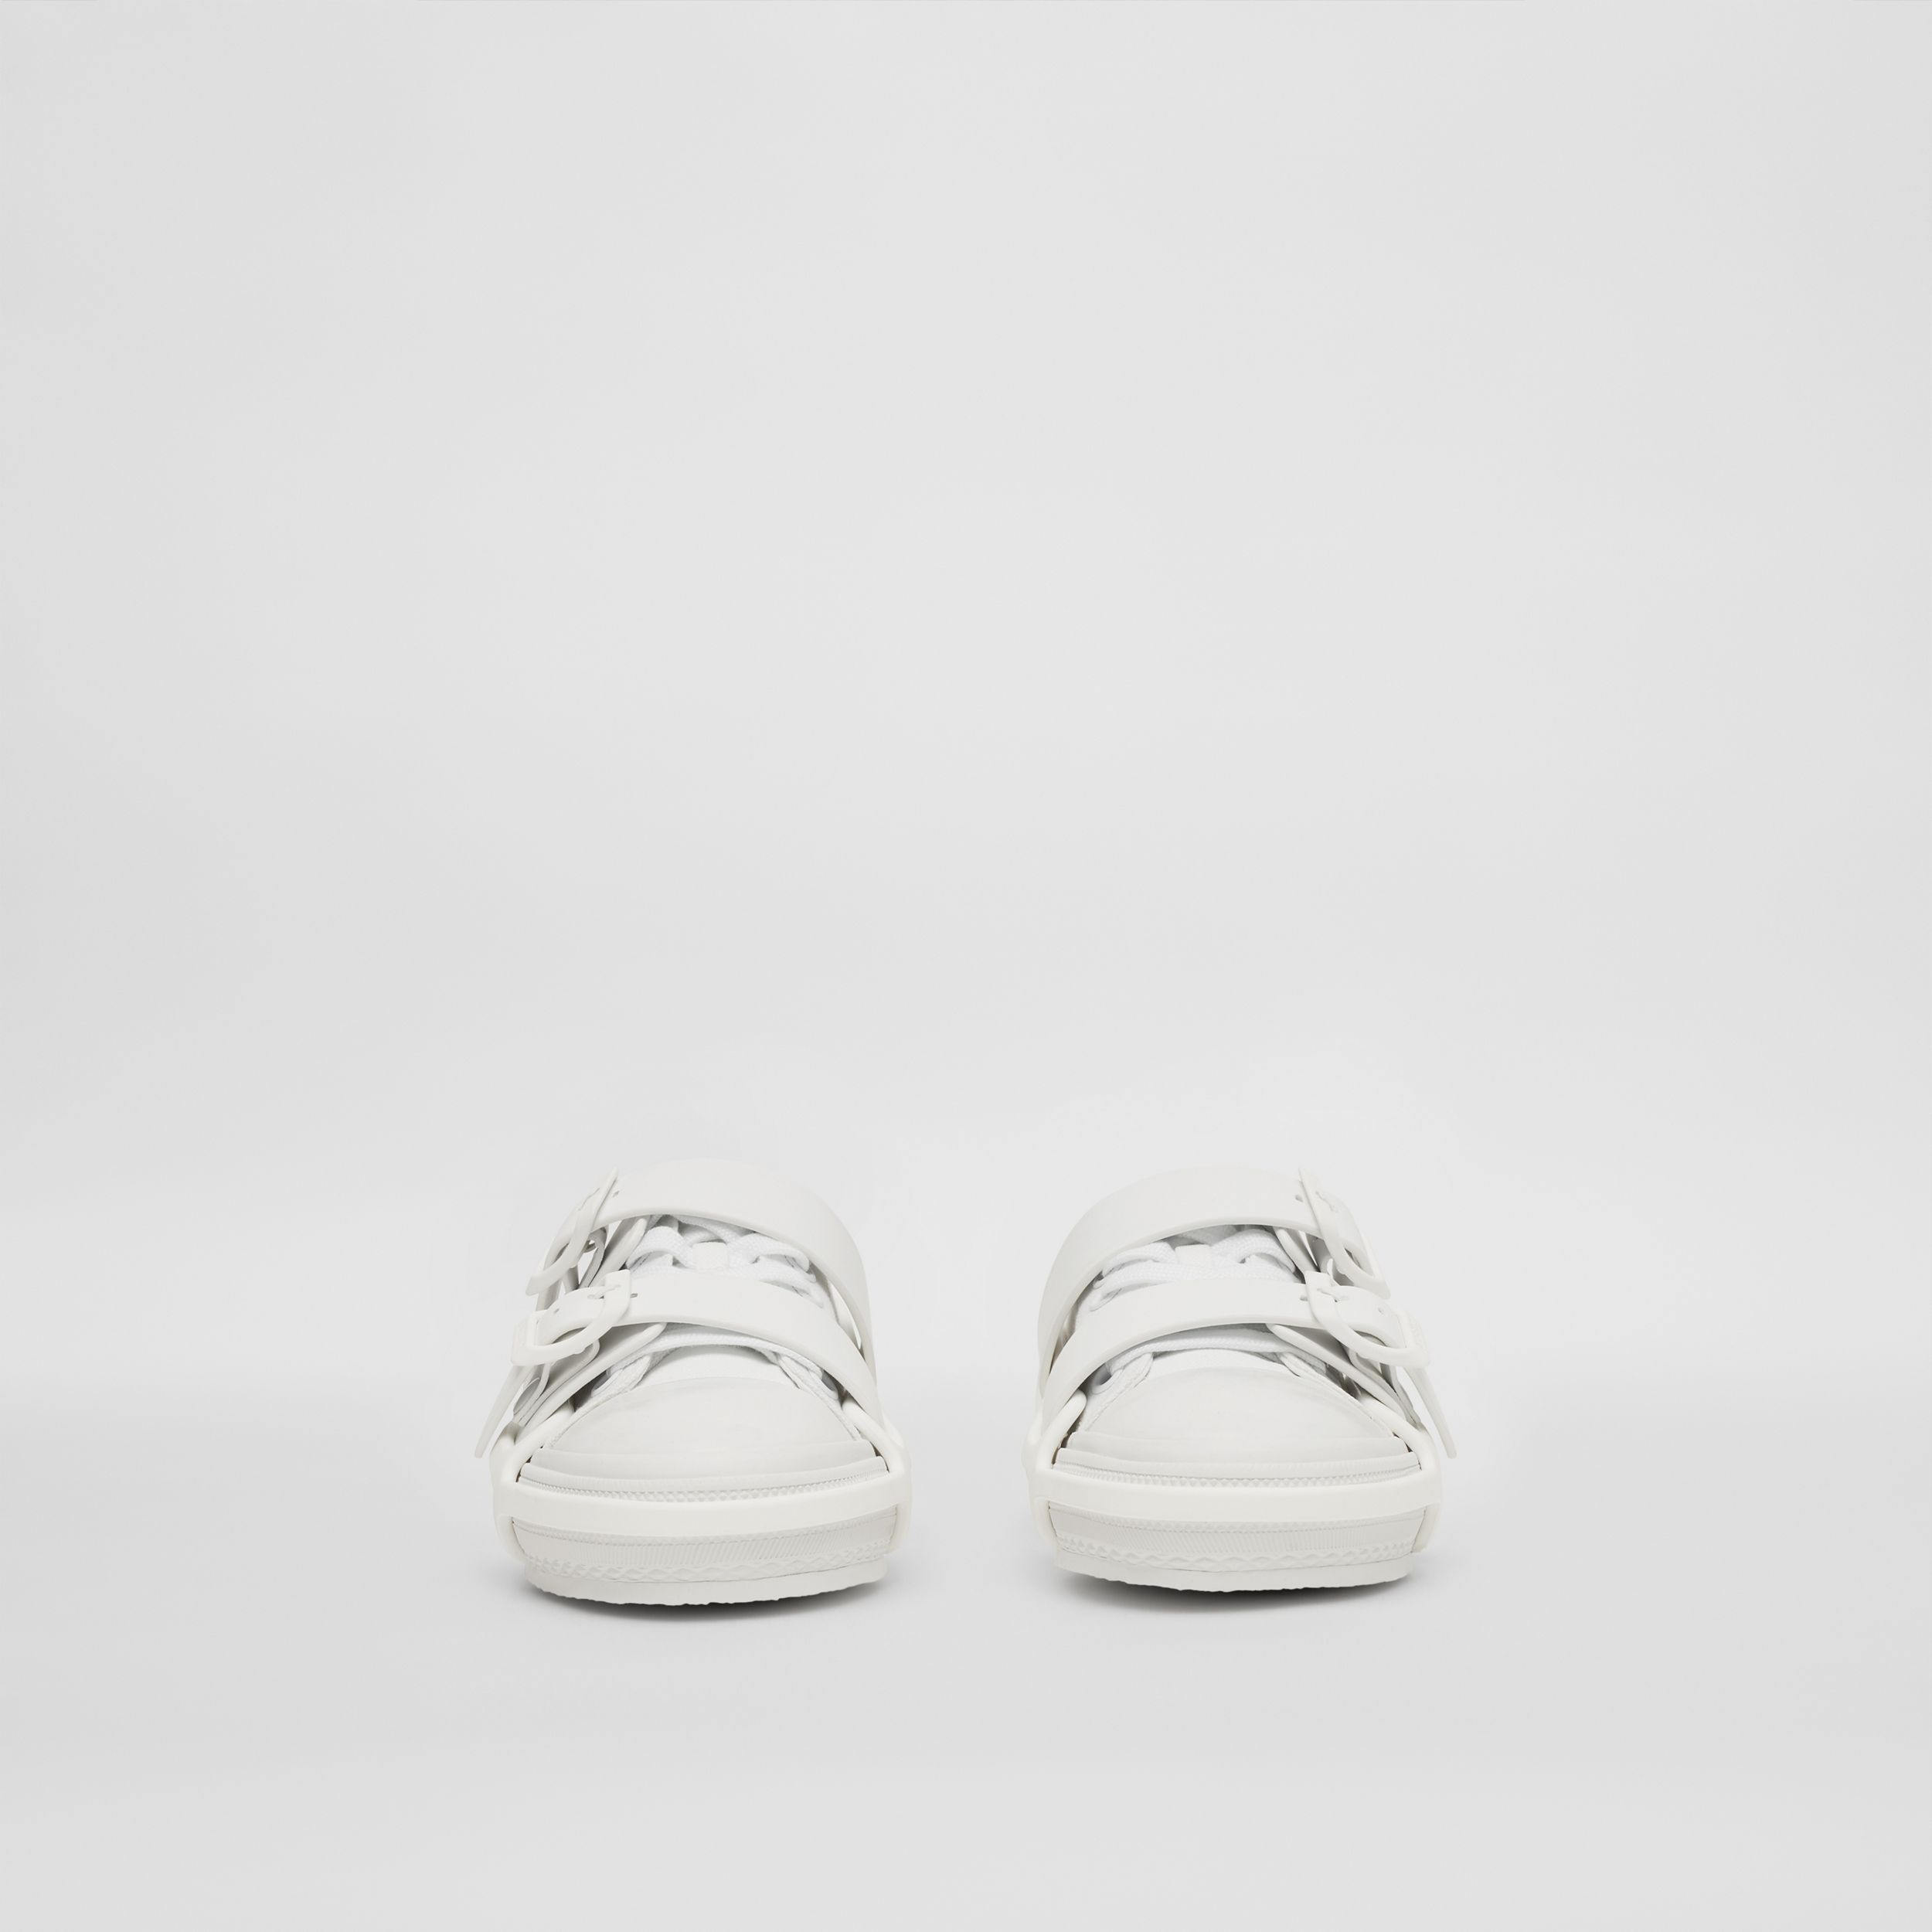 Cotton and Leather Webb Sneakers in White - Women | Burberry - 4